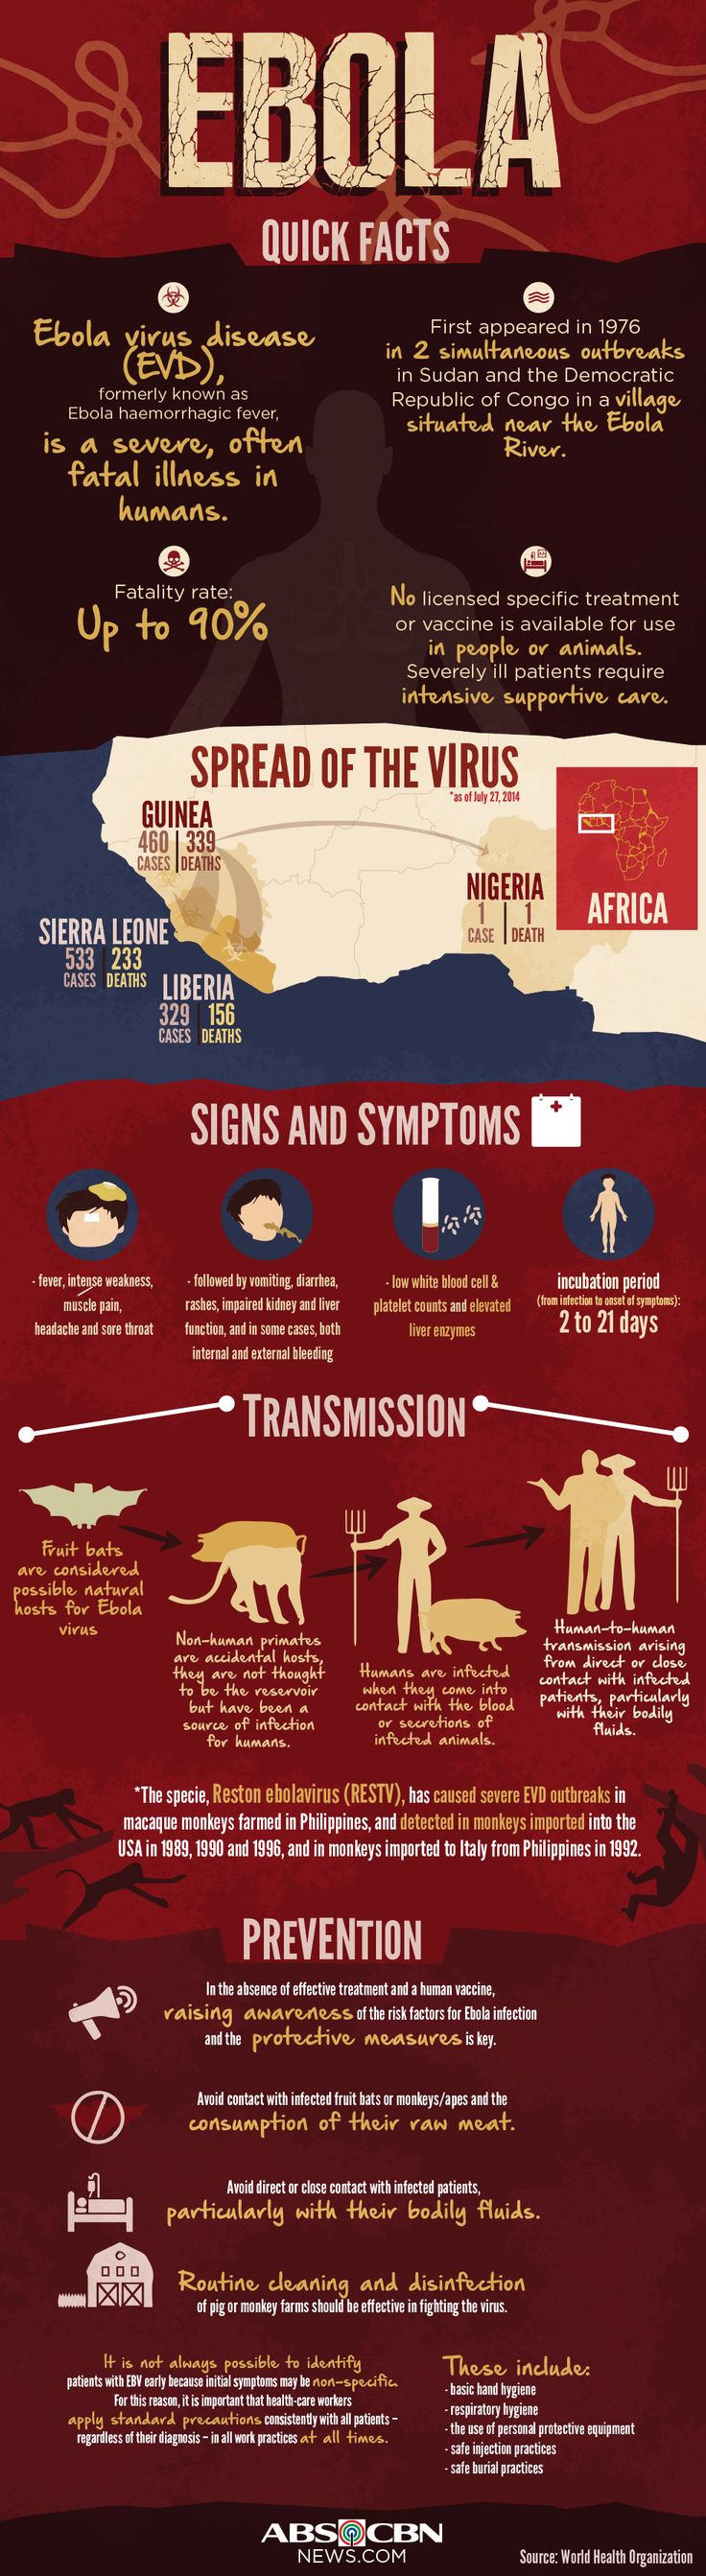 INFOGRAPHIC: Ebola quick facts | ABS-CBN News ----> Follow http://www.pinterest.com/TruckSchoolInfo/what-you-need-to-know-about-the-ebola-virus/ for more facts about the Ebola Virus!